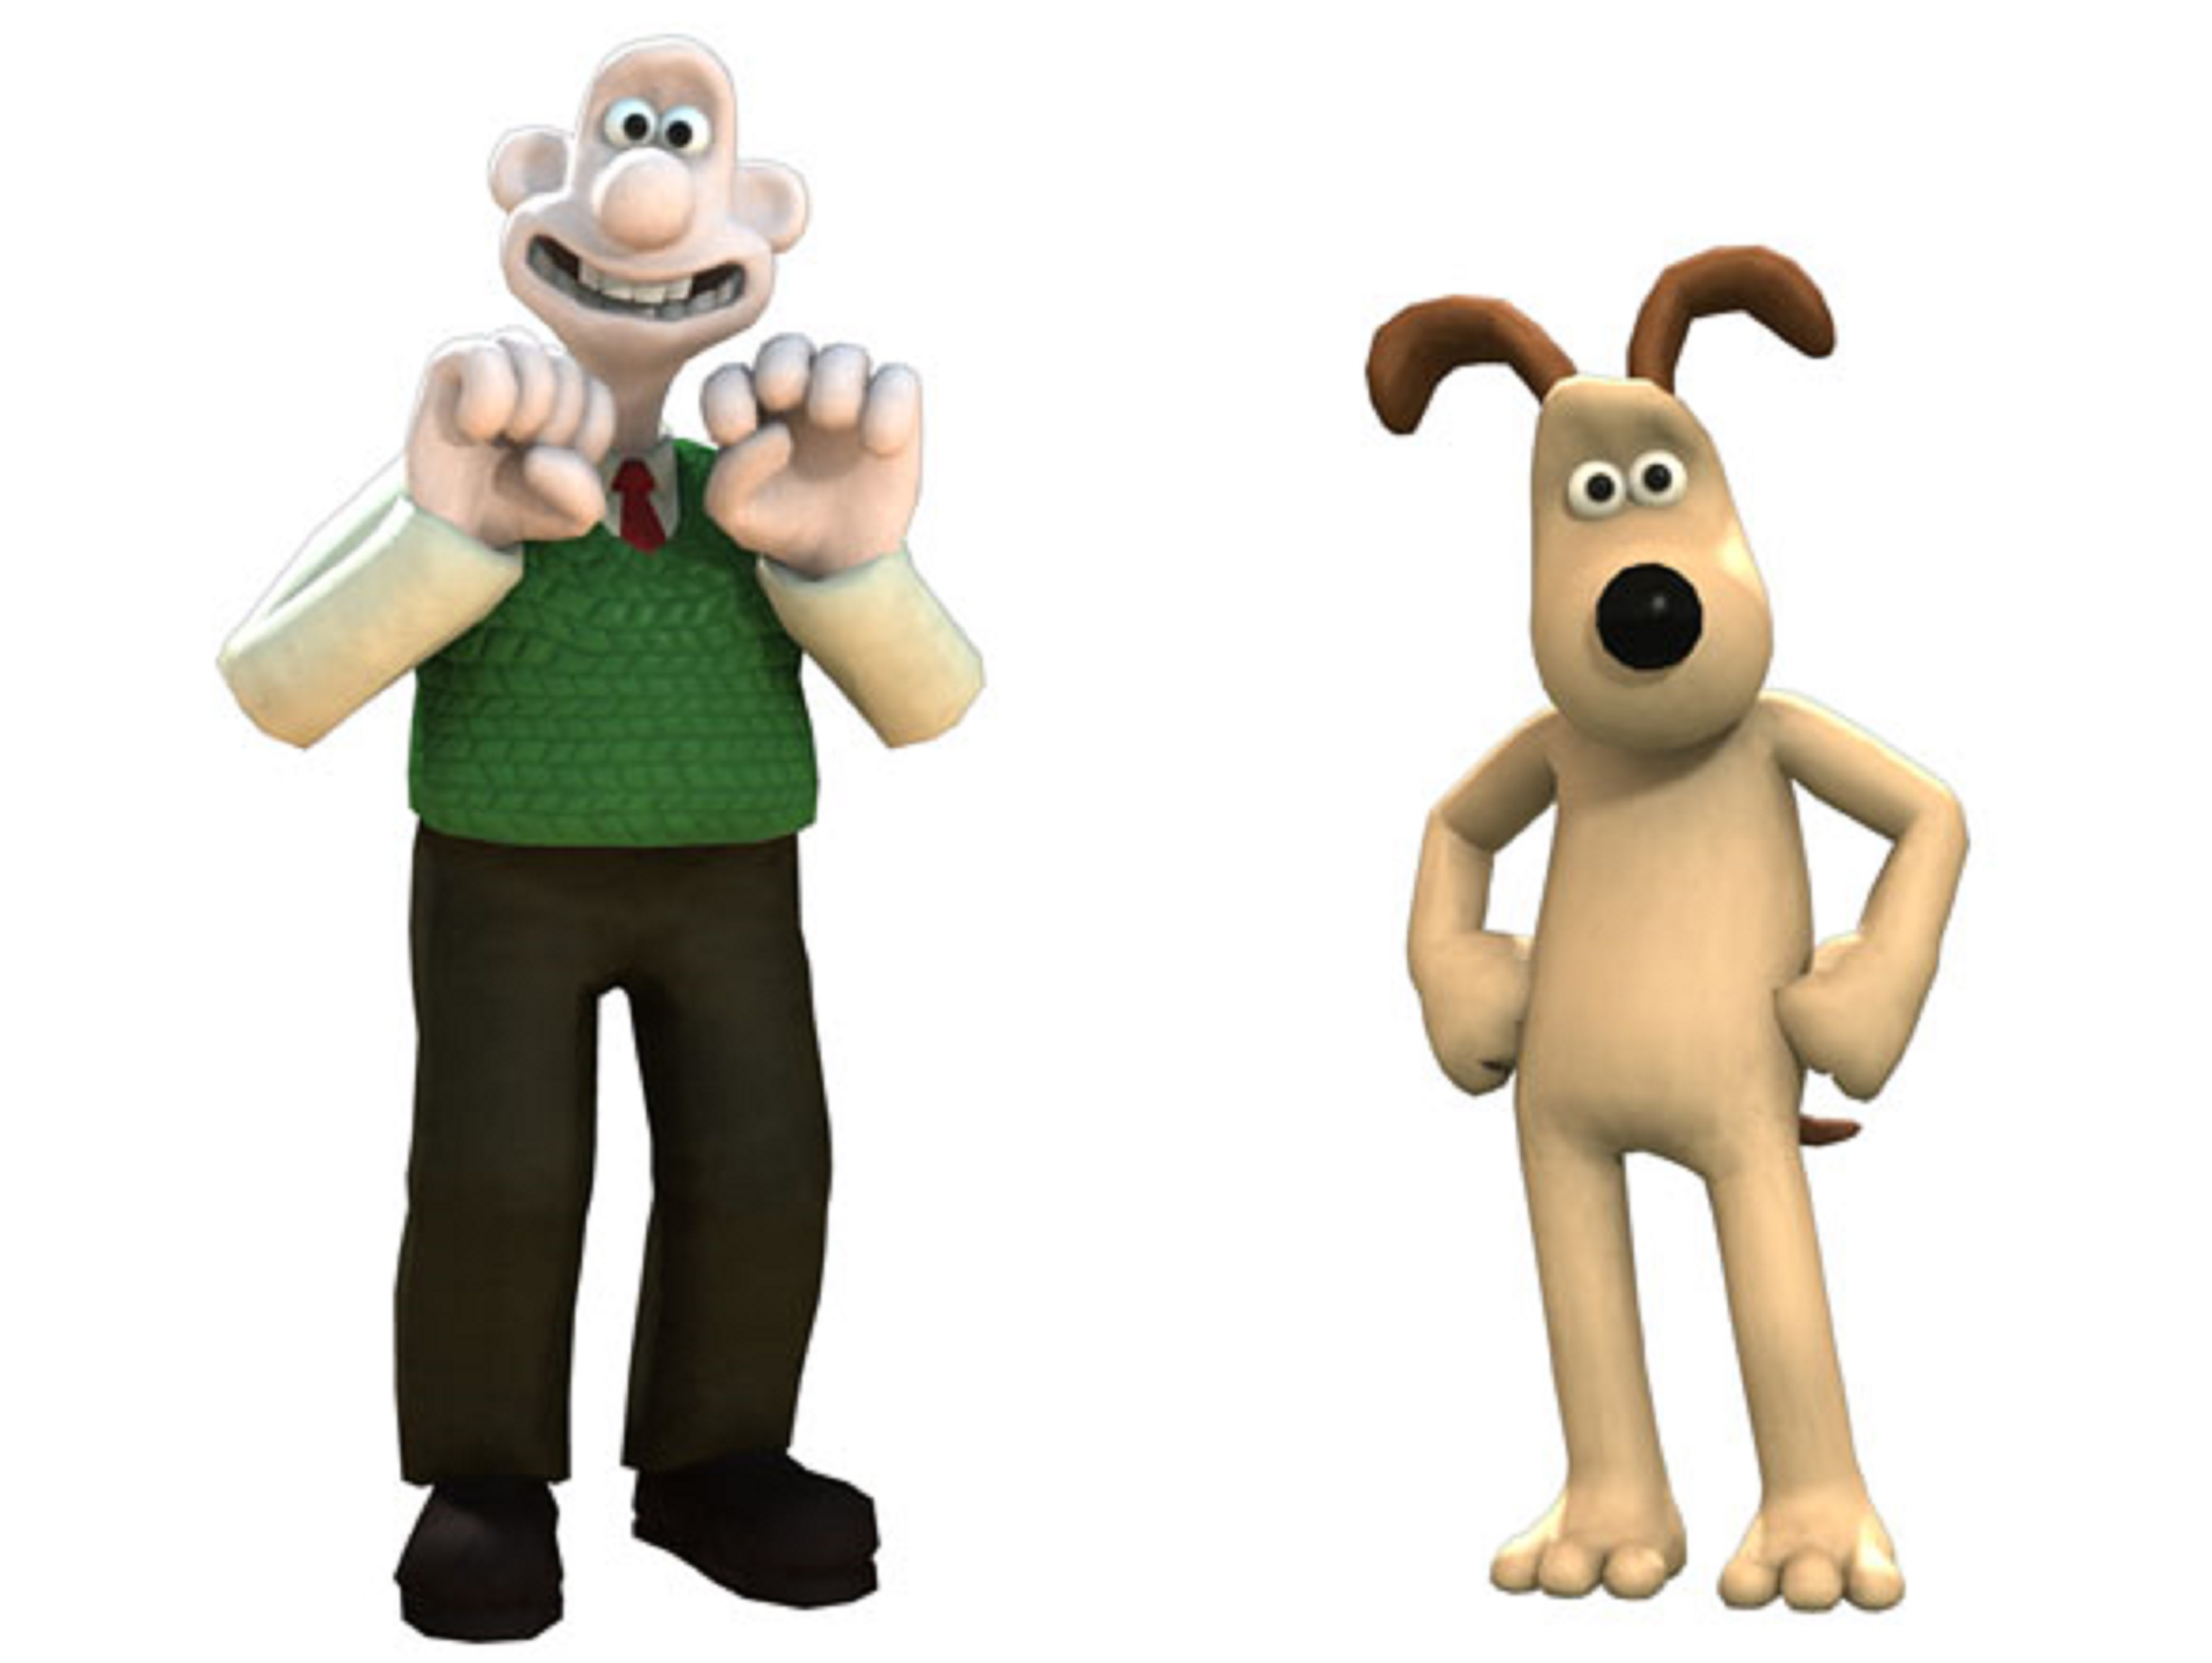 Nice wallpapers Wallace & Gromit 2800x2105px